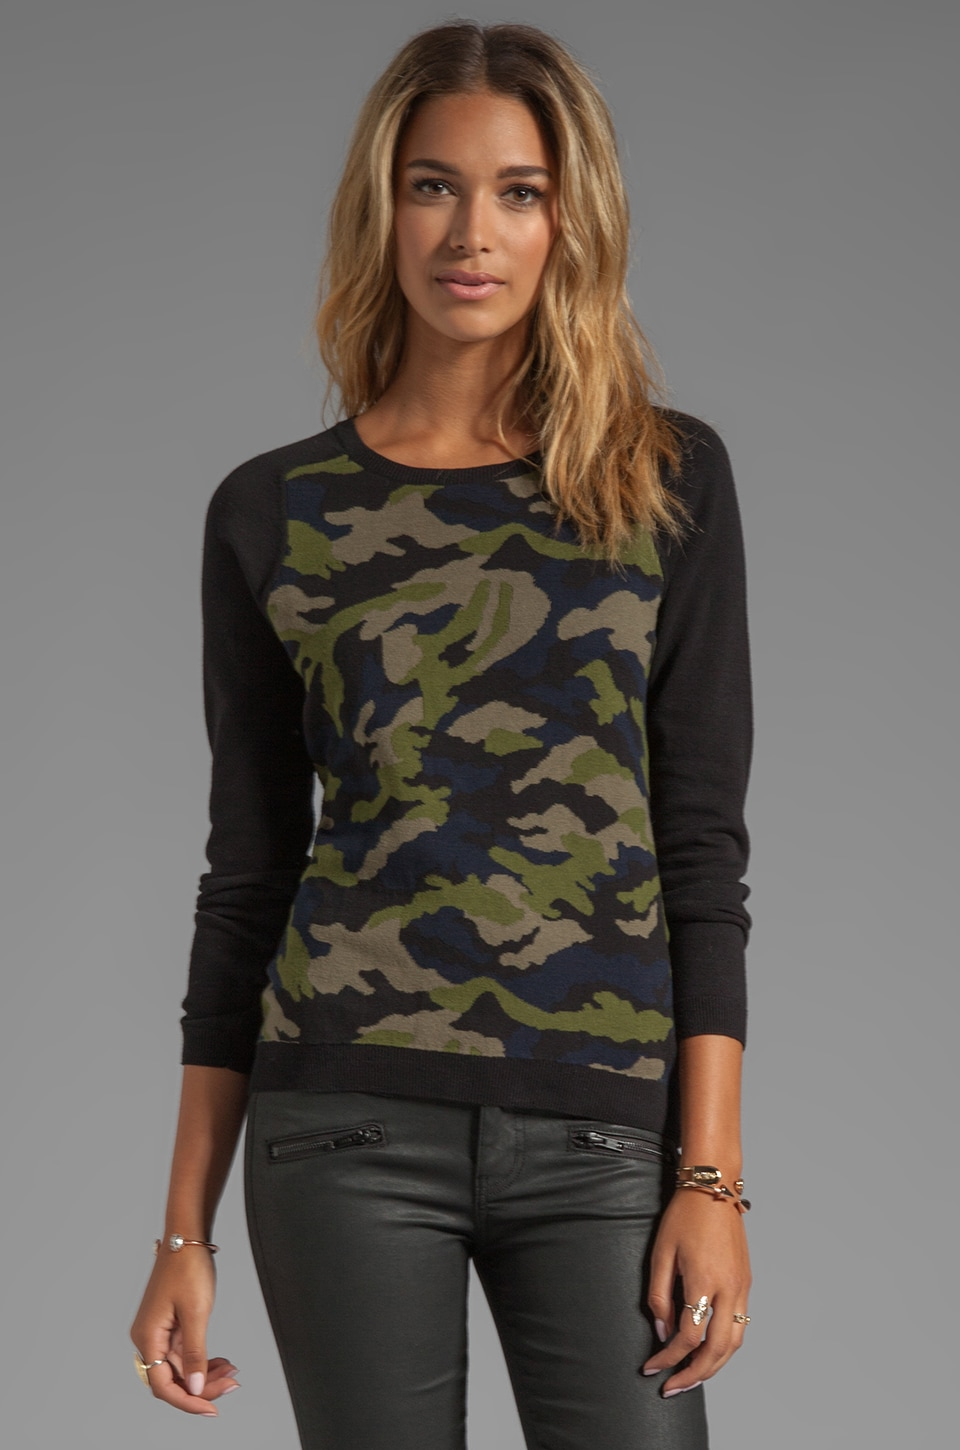 Sanctuary Camo Intarsia Sweater in Northern Green